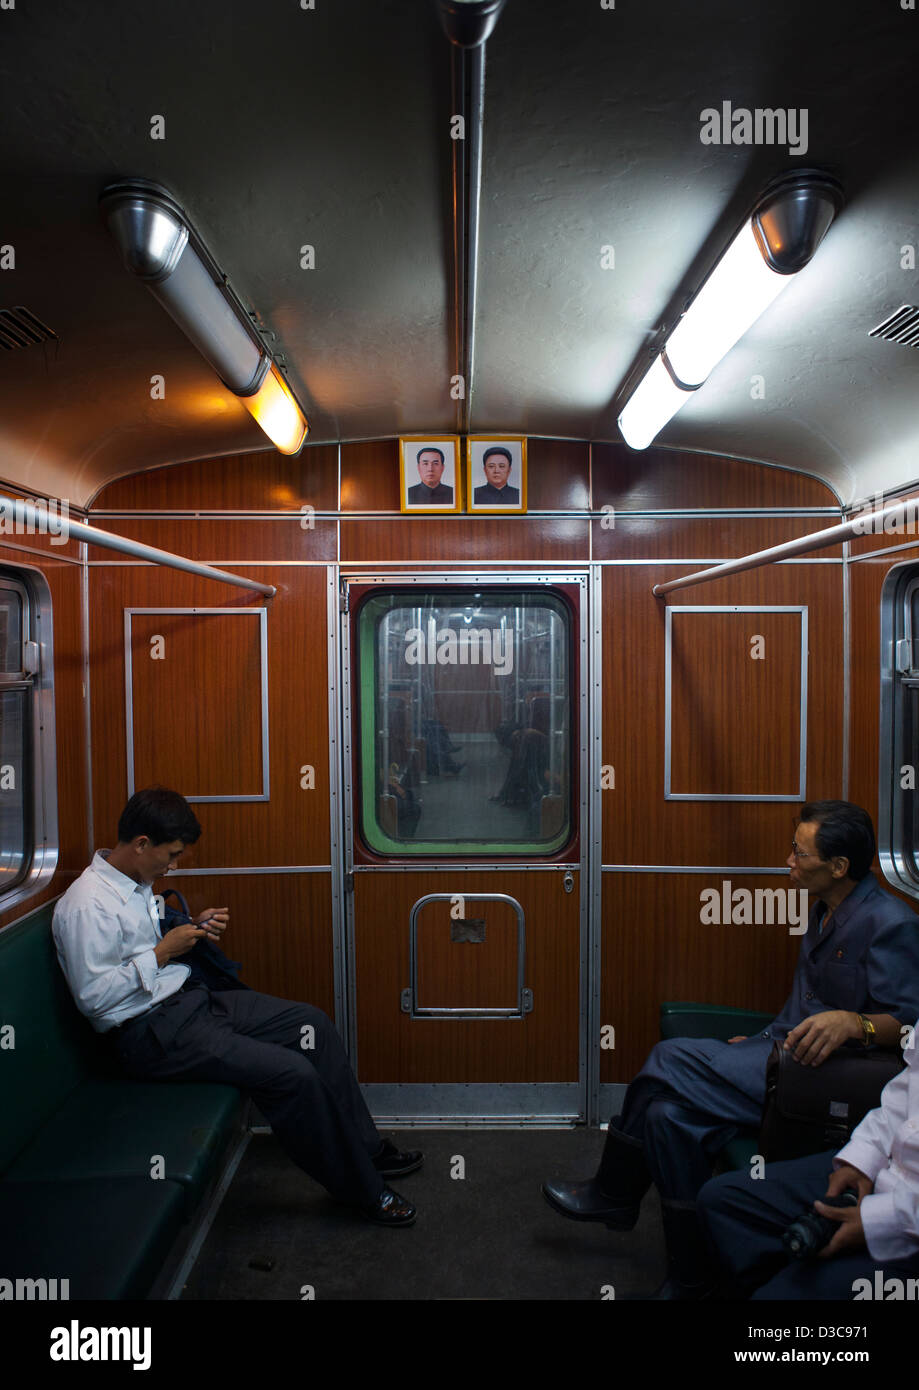 a view of the interior of a metro train pyongyang north korea stock photo royalty free image. Black Bedroom Furniture Sets. Home Design Ideas